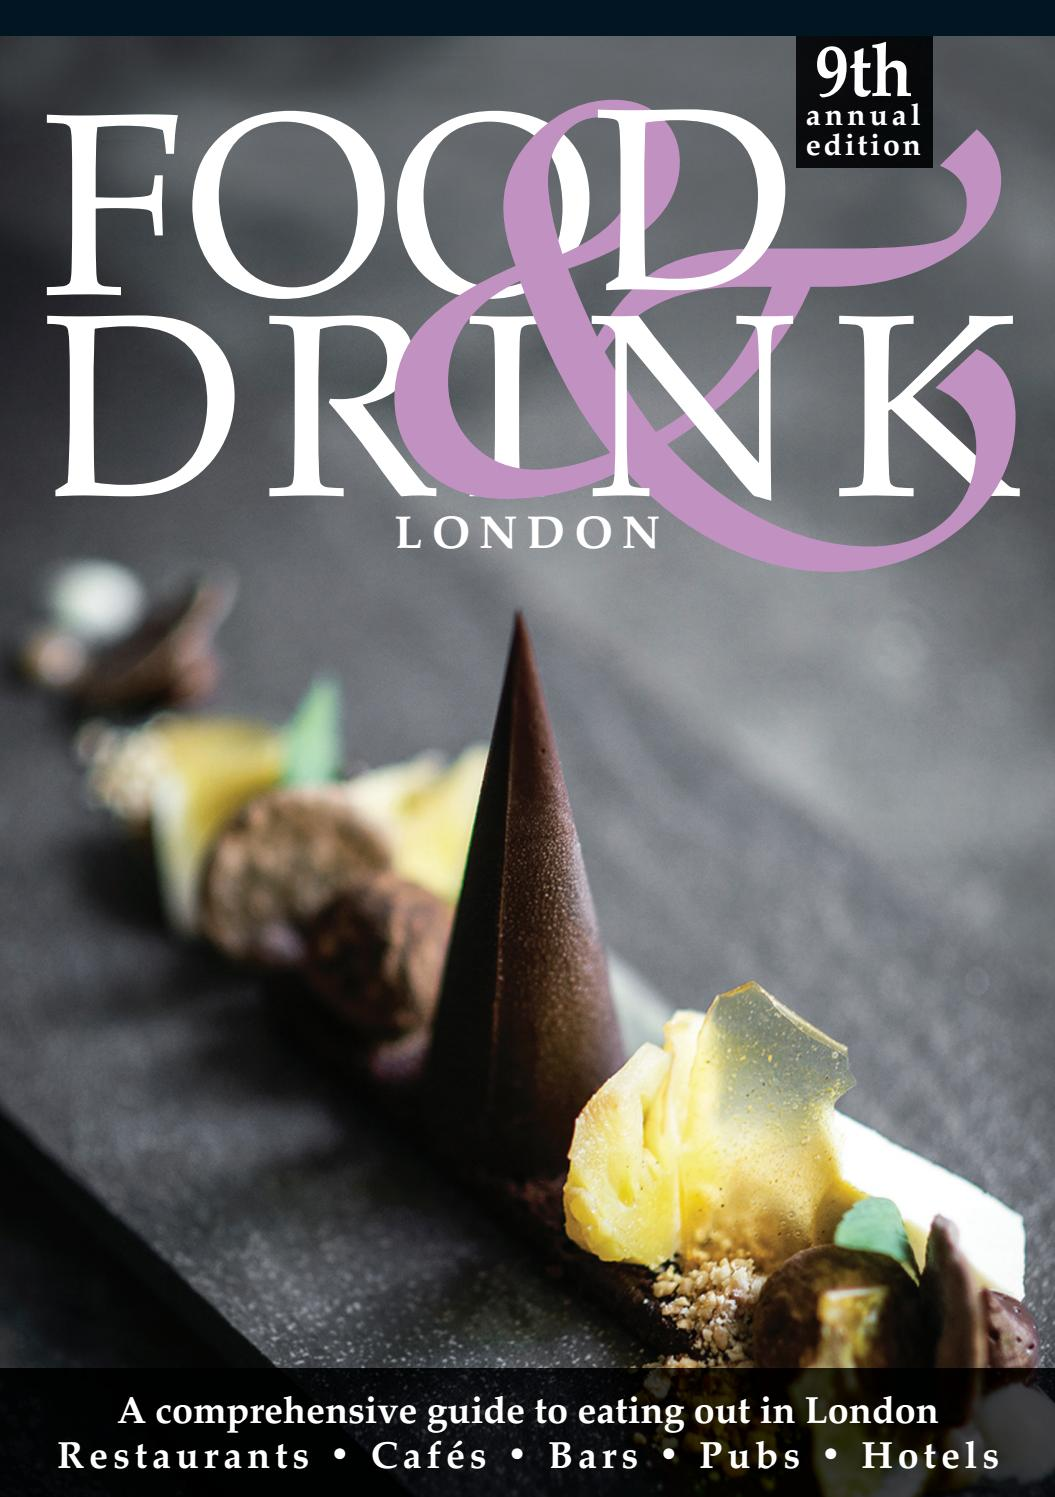 London Food Drink Guide 2019 By Food Drink Guides Issuu